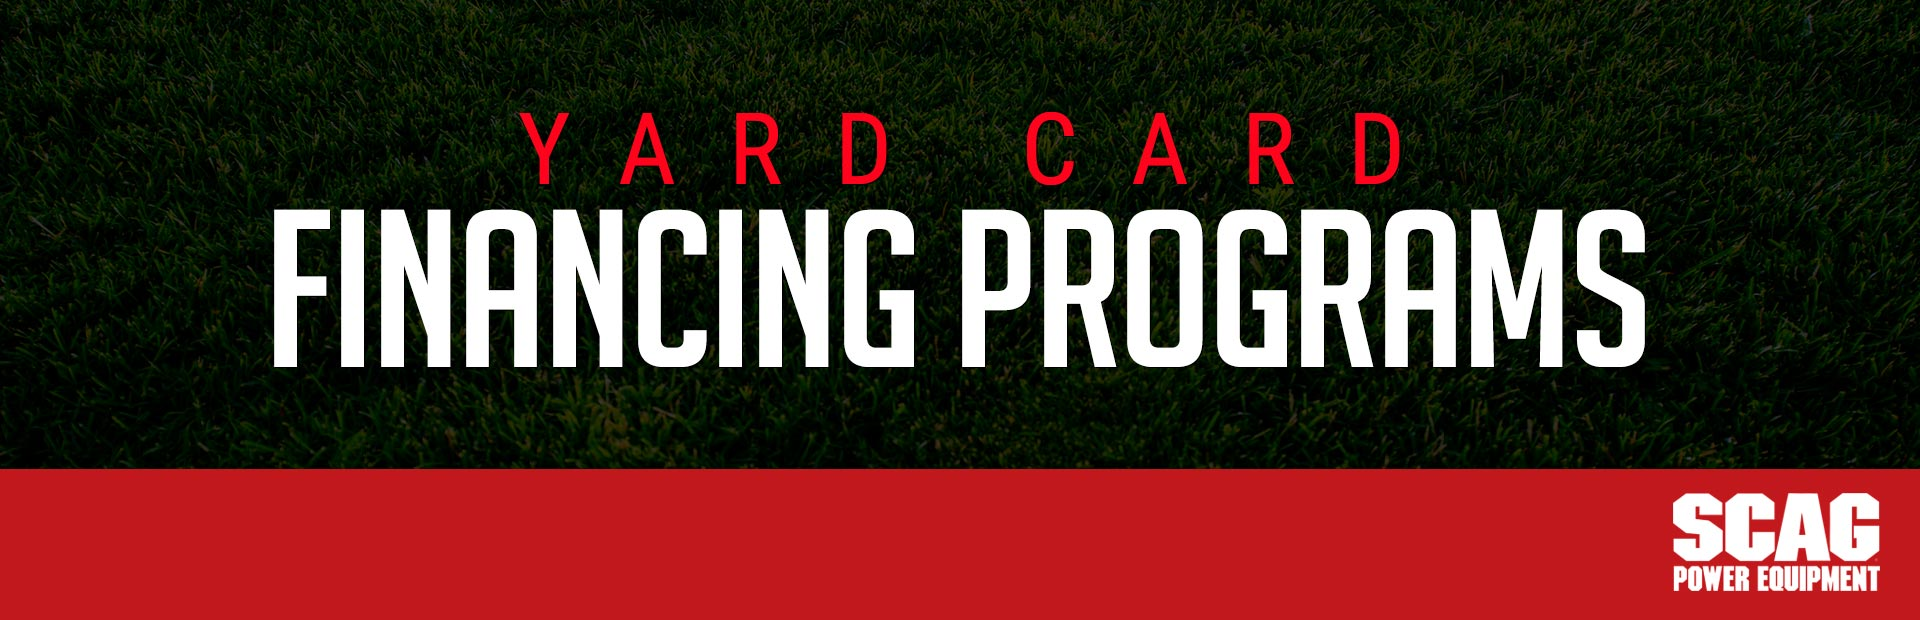 Scag: YARD CARD FINANCING PROGRAMS